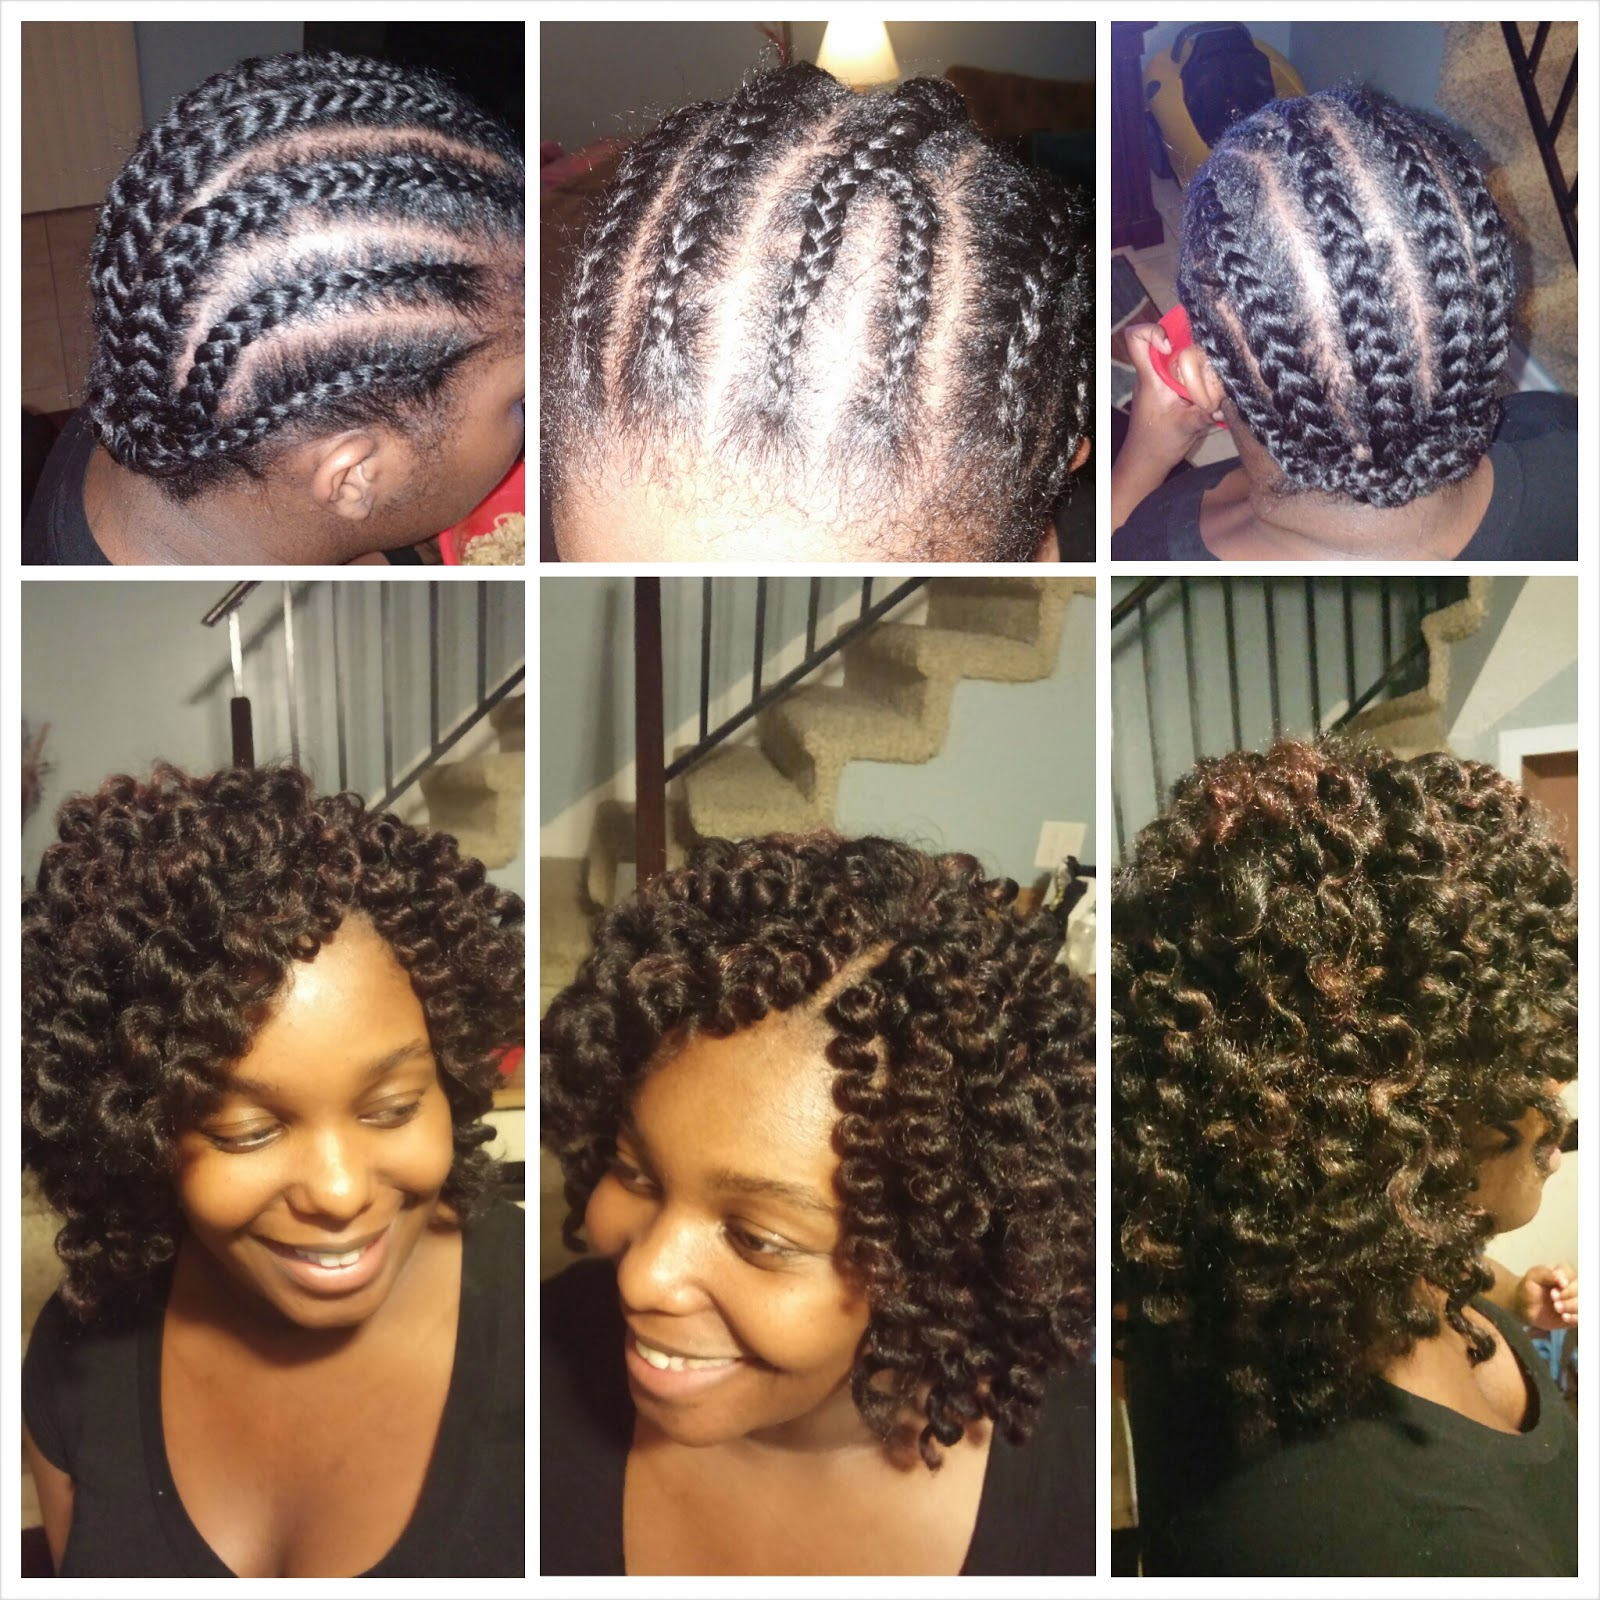 Crochet Braids Grew My Hair : crochet braids tiwstout